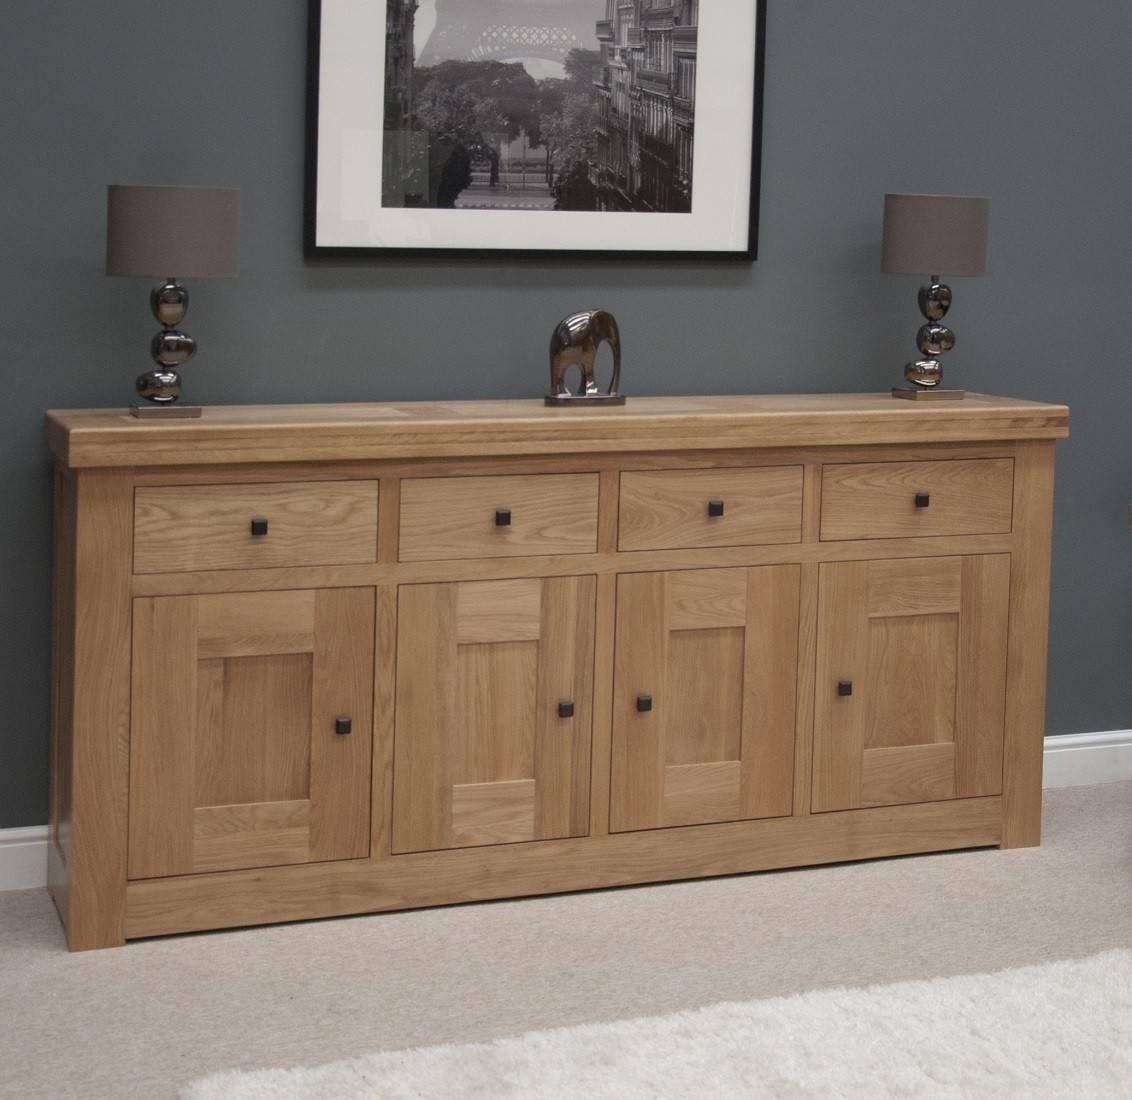 French Bordeaux Oak Extra Large 4 Door Sideboard | Oak Furniture Uk Throughout Rustic Oak Large Sideboards (View 11 of 15)